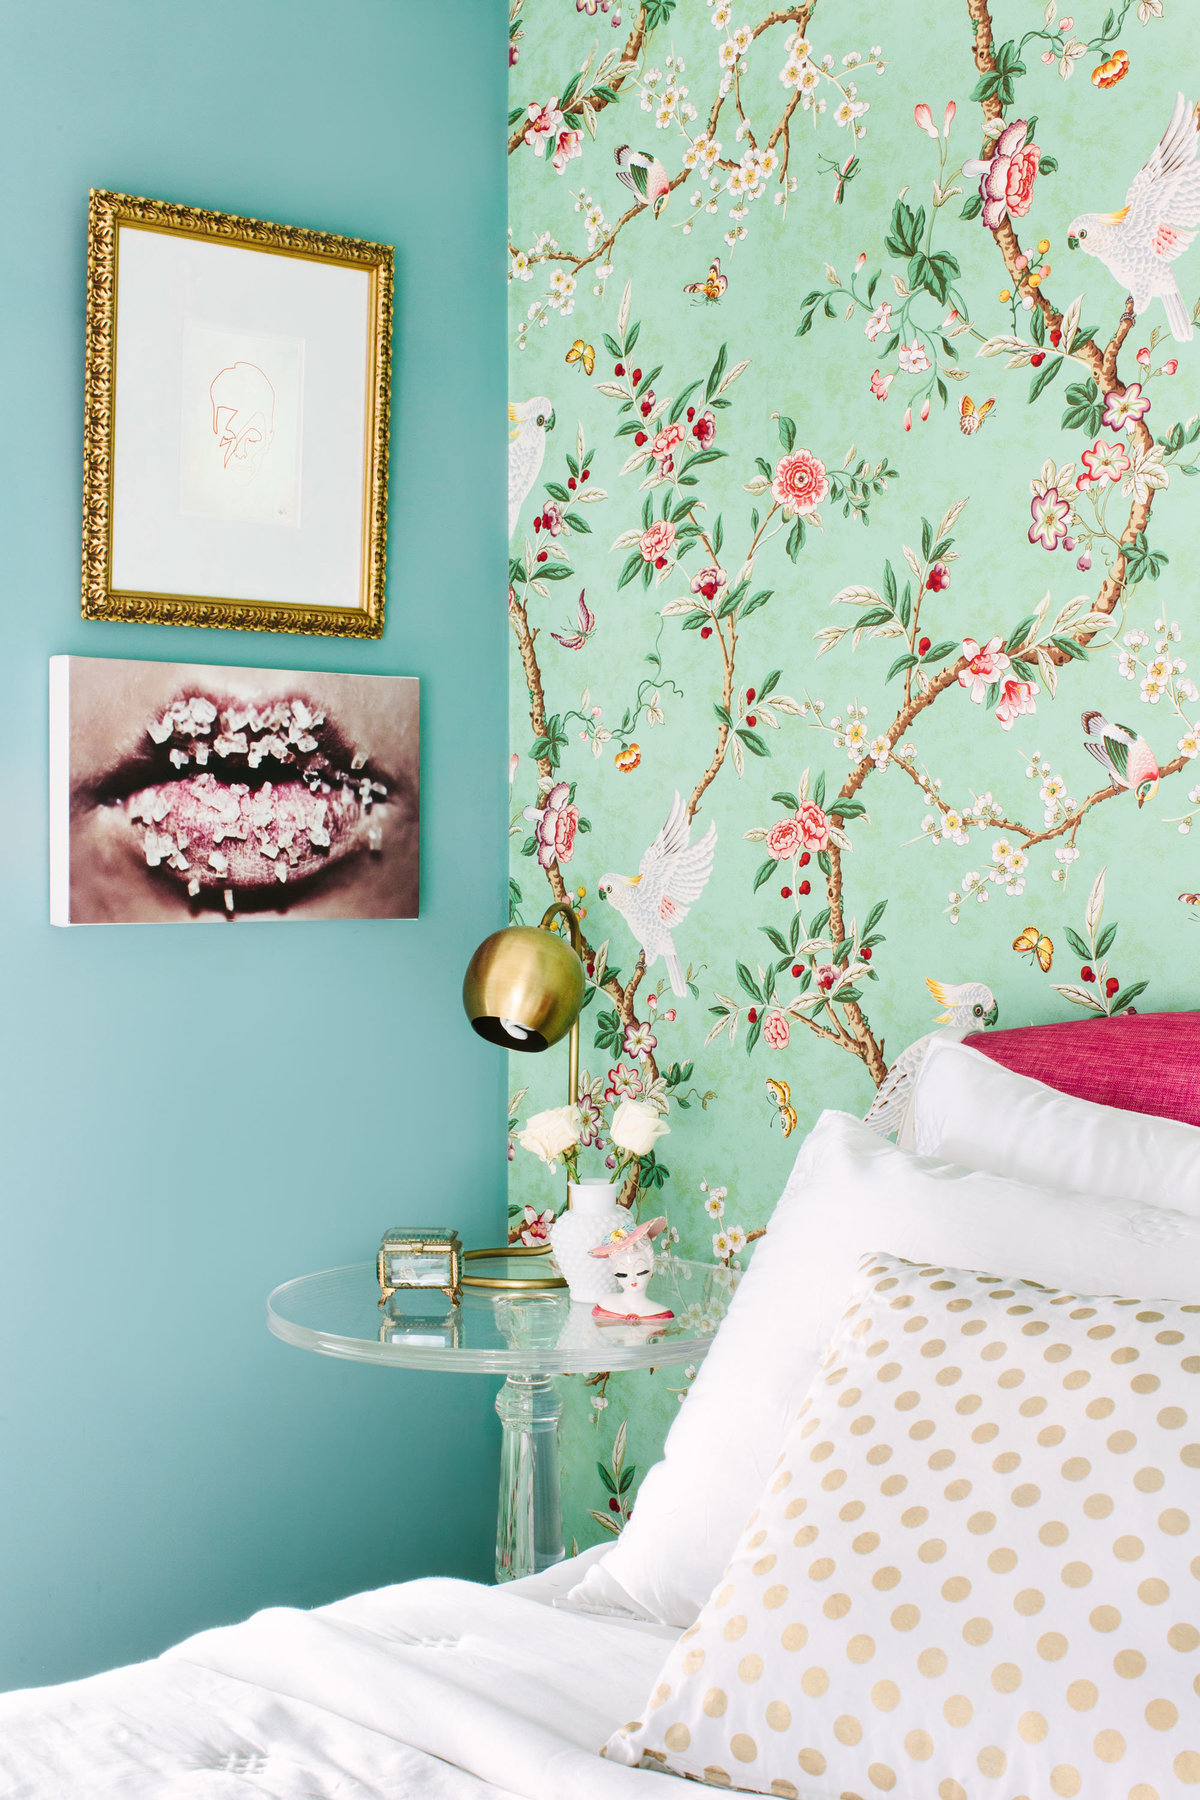 Glamour-Nest-Los-Angeles-Girly-Glamour-Interior-Bedroom-02